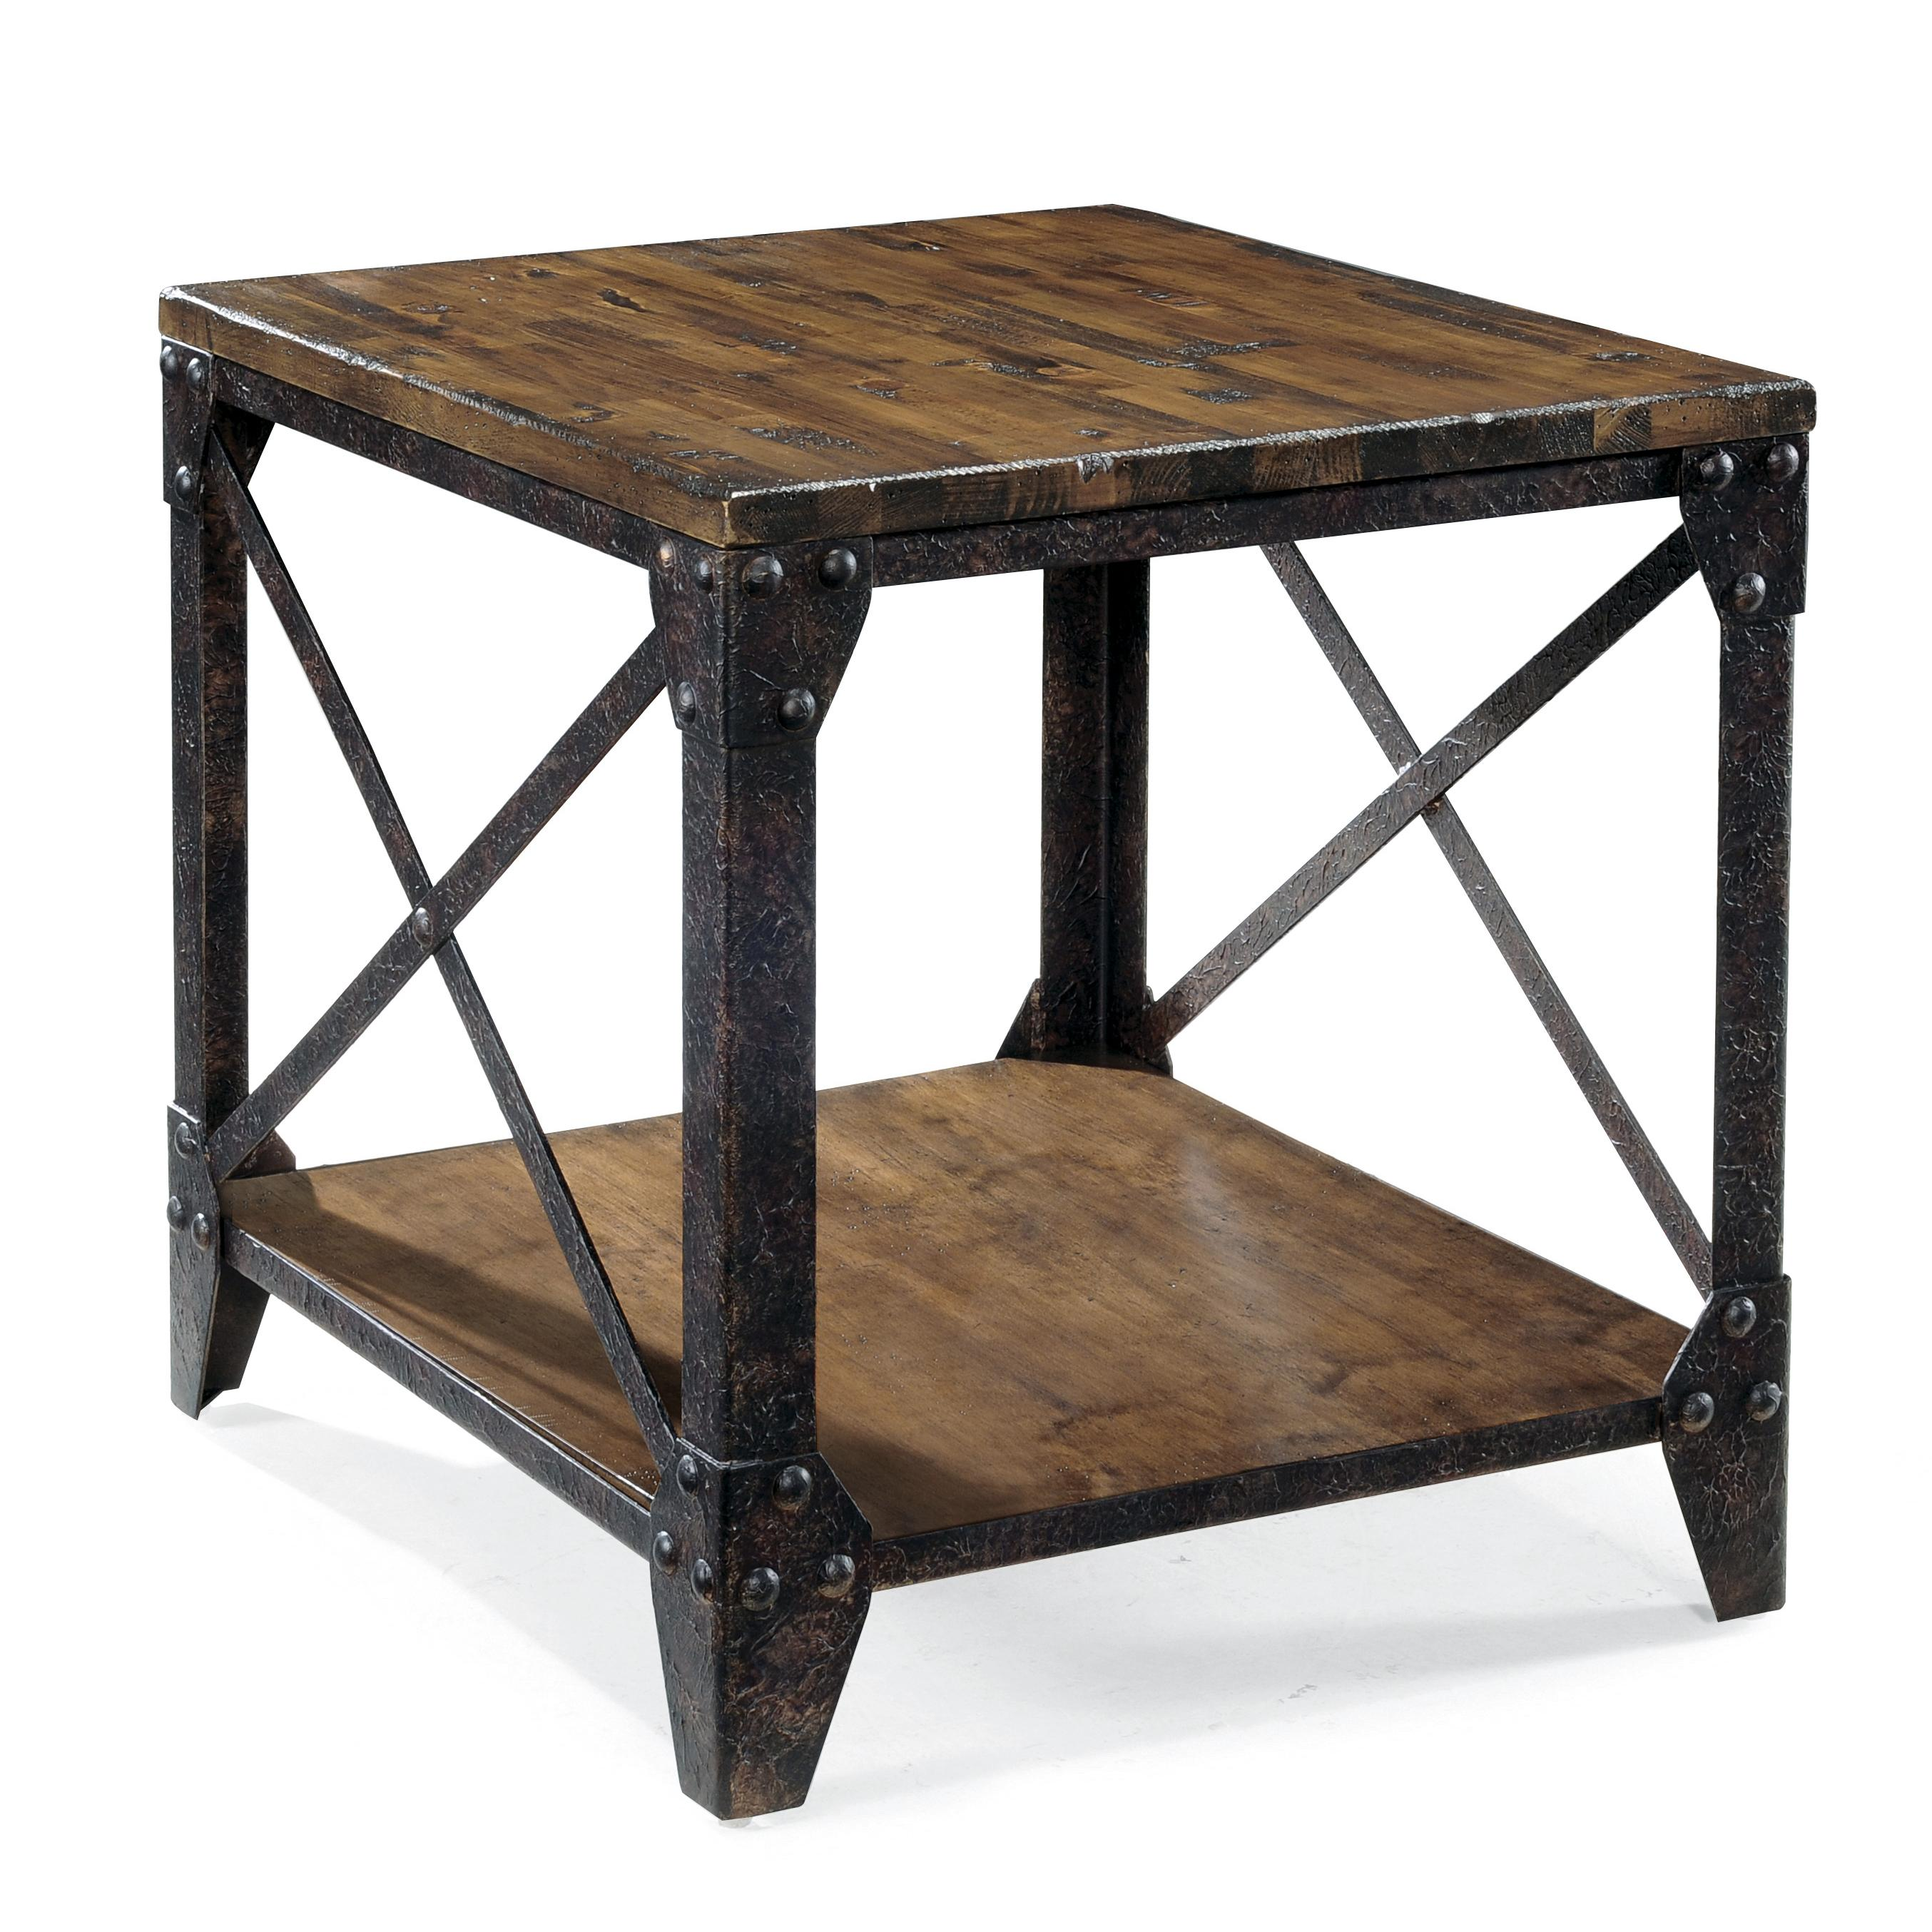 live edge slab dining table probably super real rustic wood end rectangular with iron legs magnussen home wolf products color pinebrook tables black bear luxury room sets small